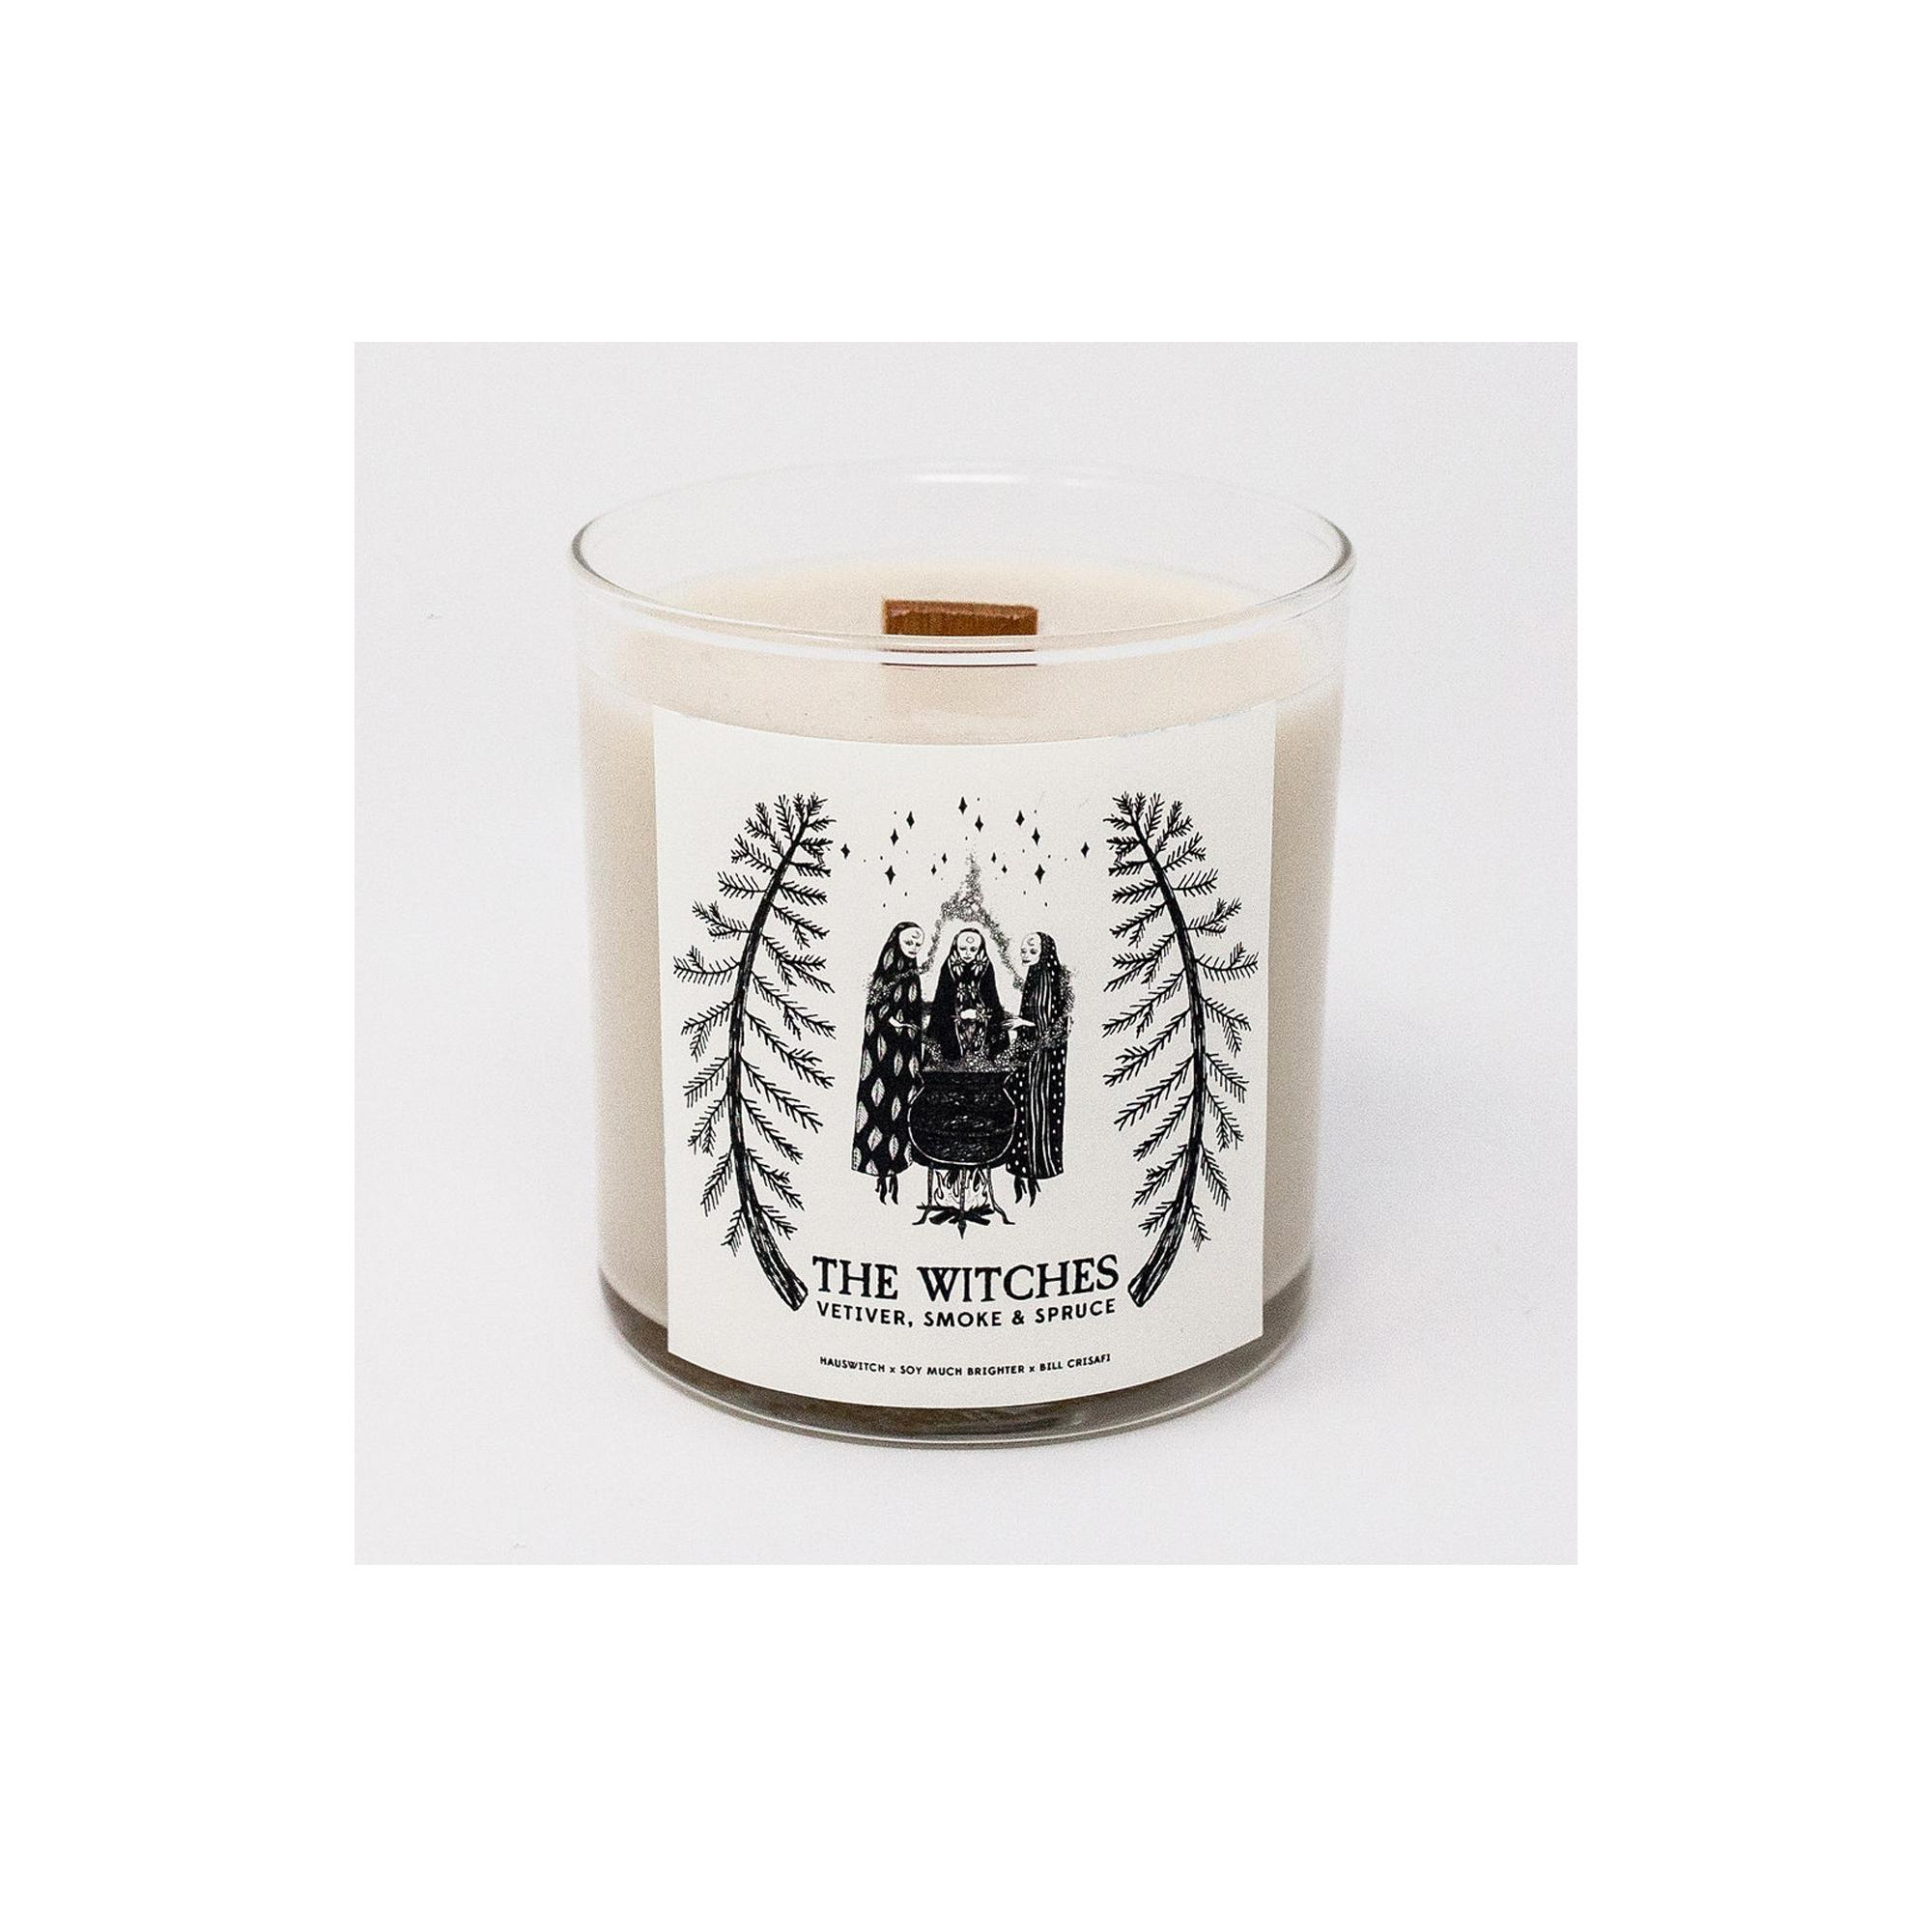 HAUSWITCH WITCHES CANDLE  Soy Much Brighter Bill Crisafi Enchanted Living Magazine